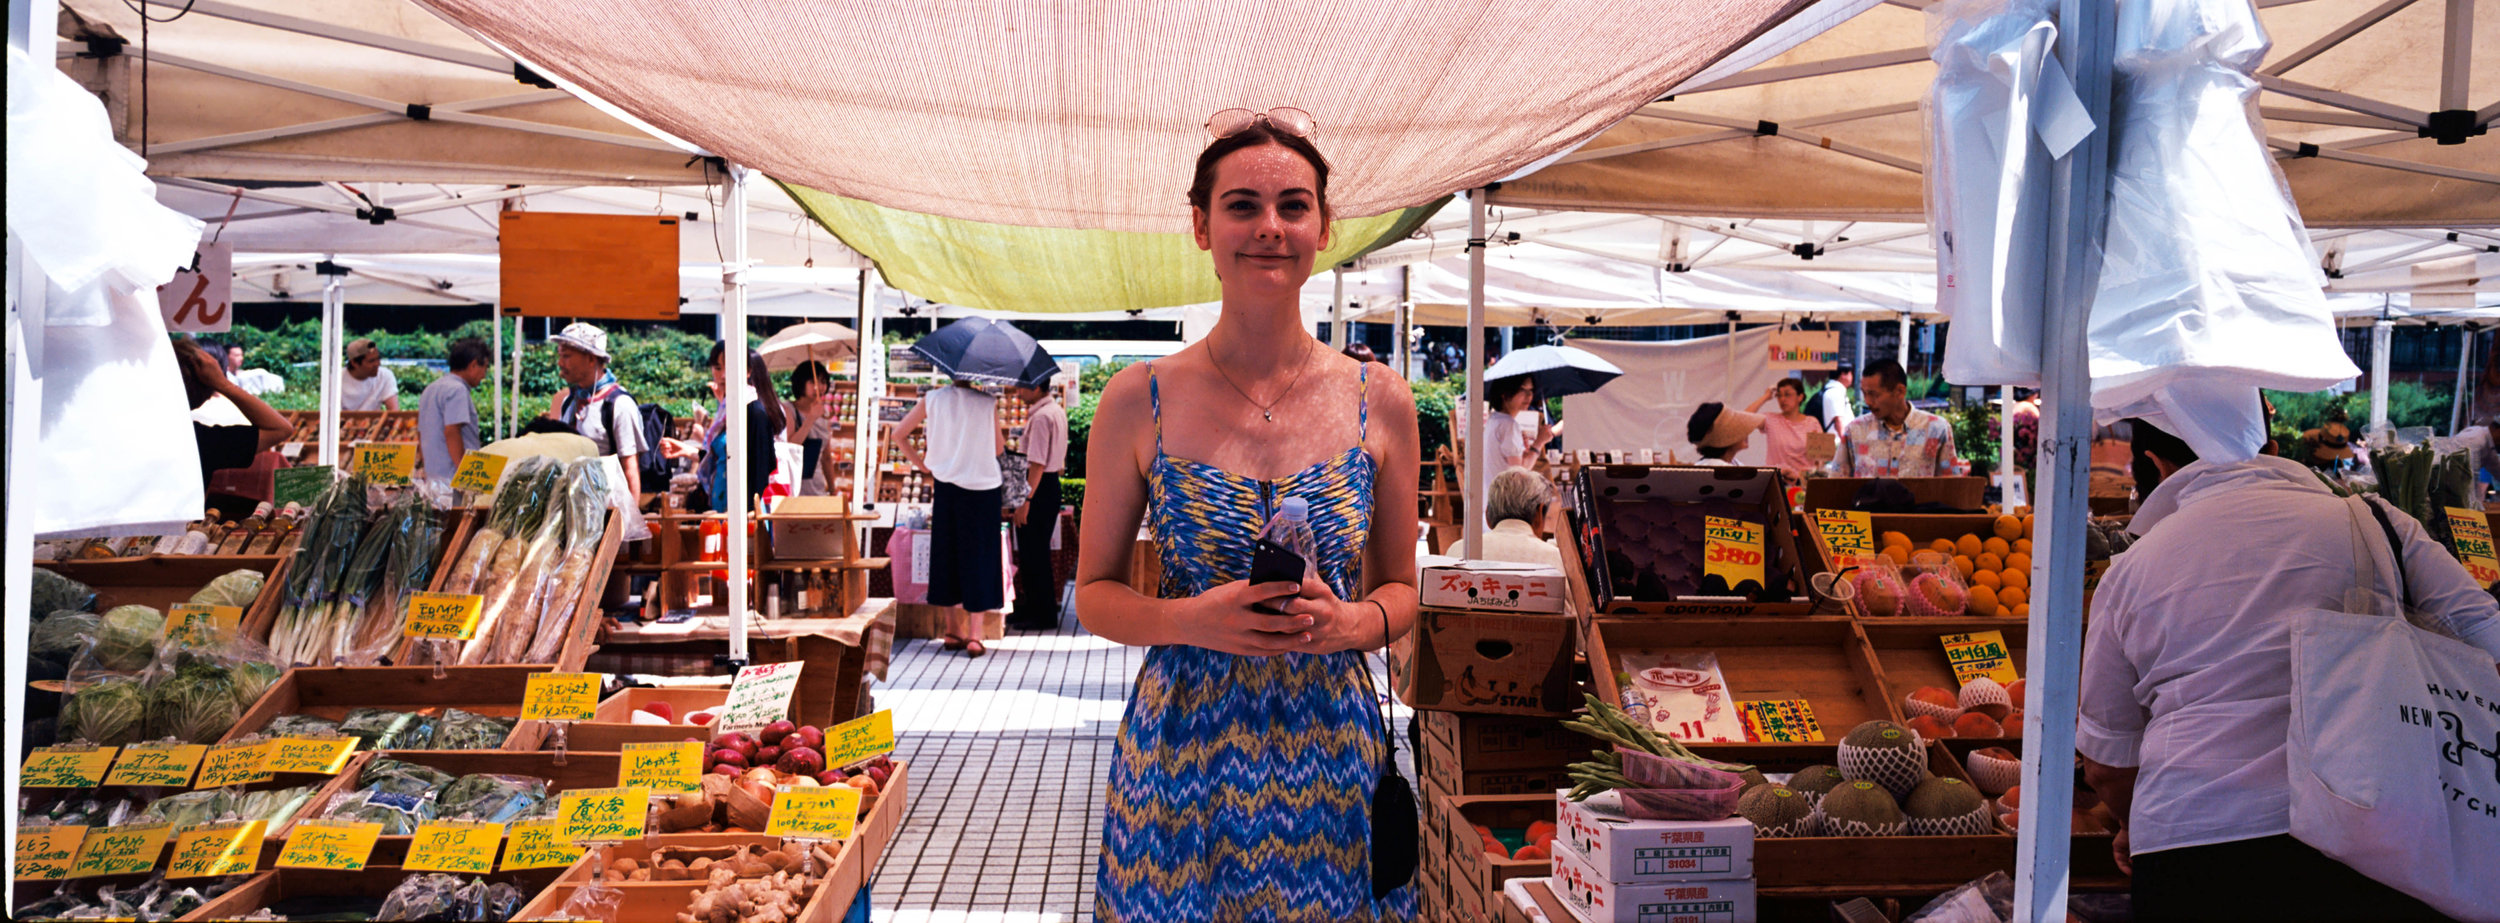 Still at the flea market - Kodak Ektar 100